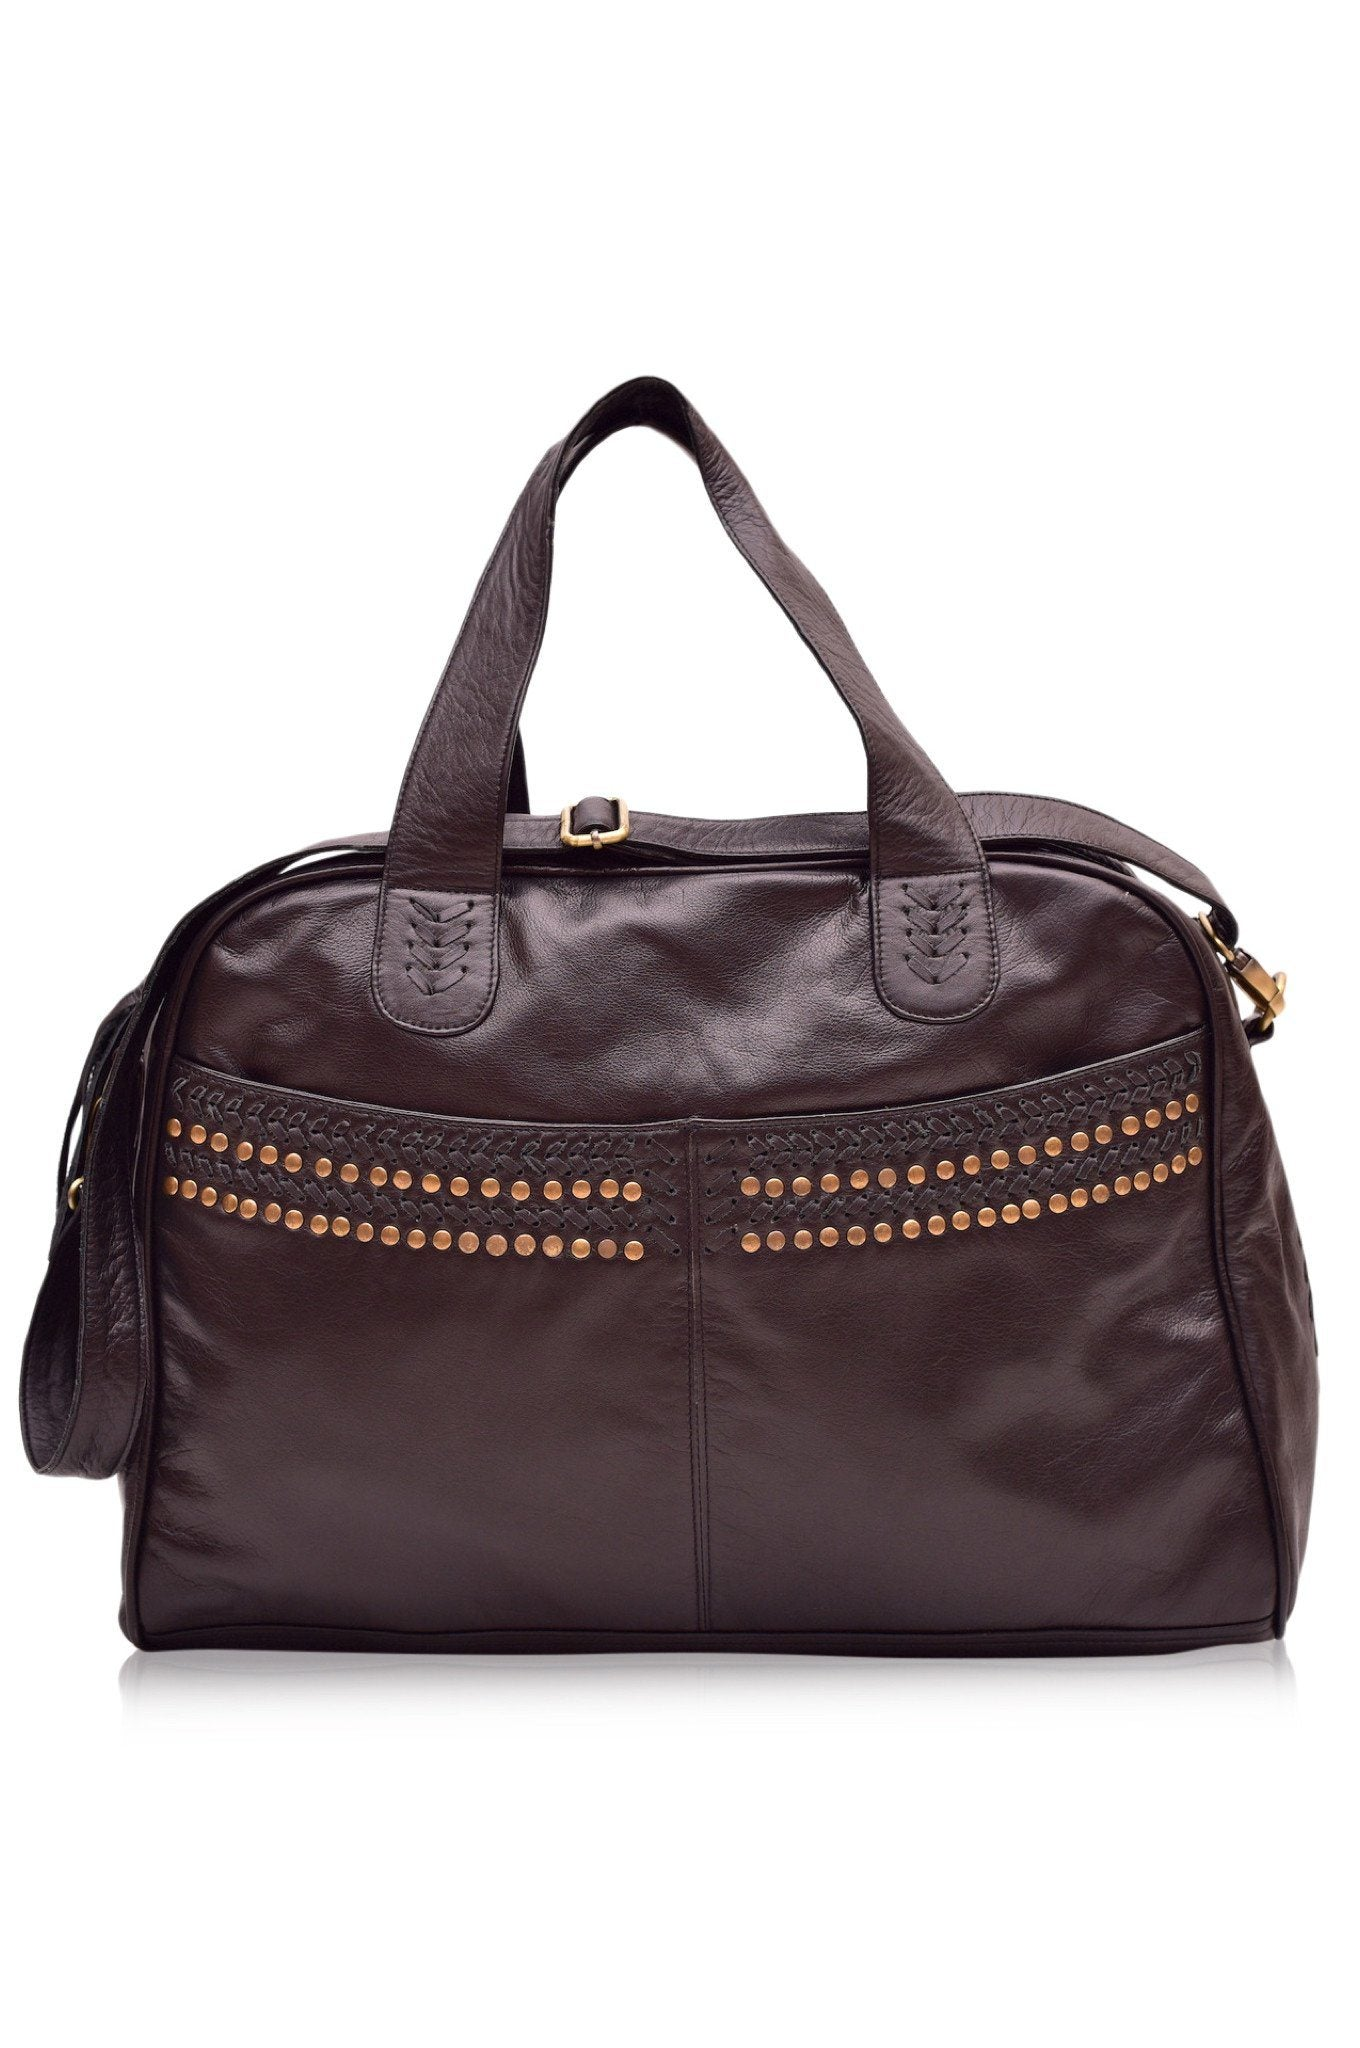 Wild Escape Leather Travel Bag